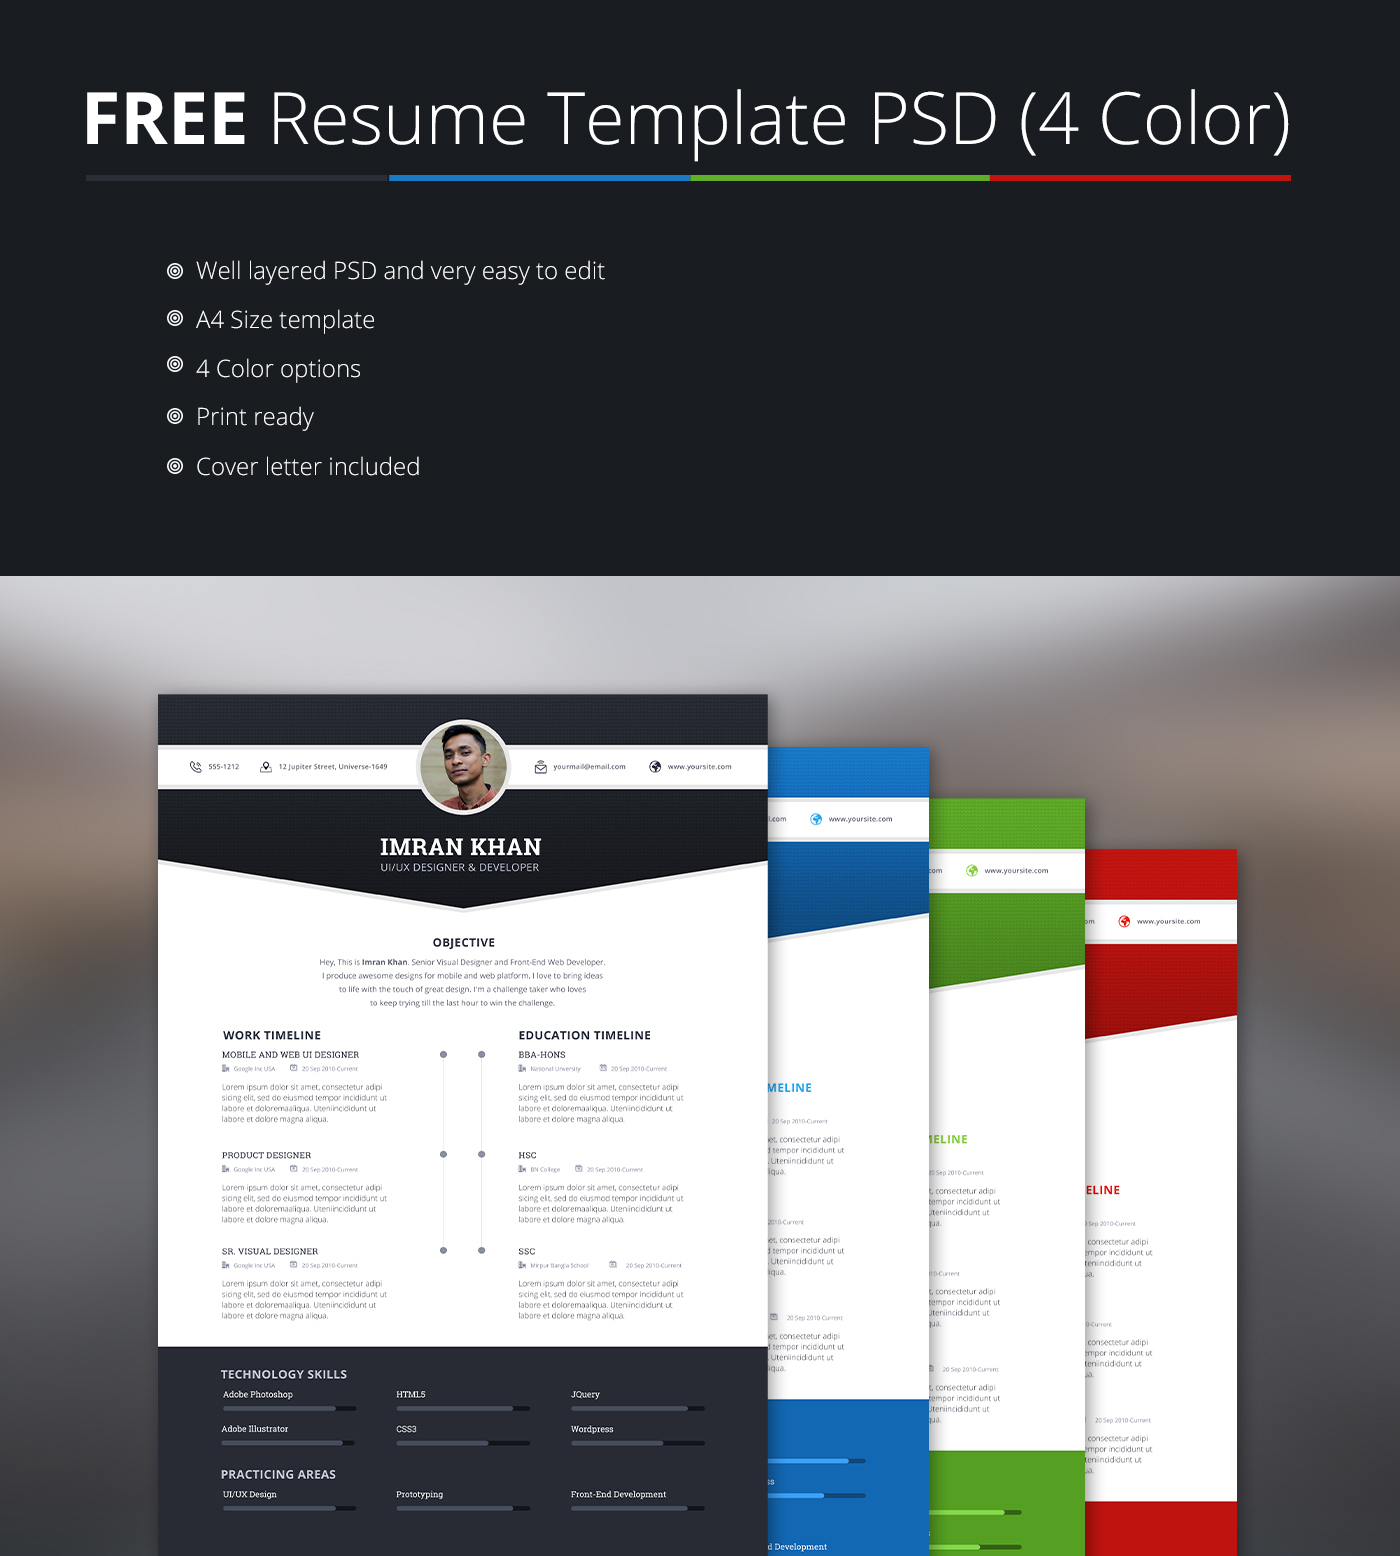 Beautiful FREE Resume Template PSD (4 Colors) On Behance